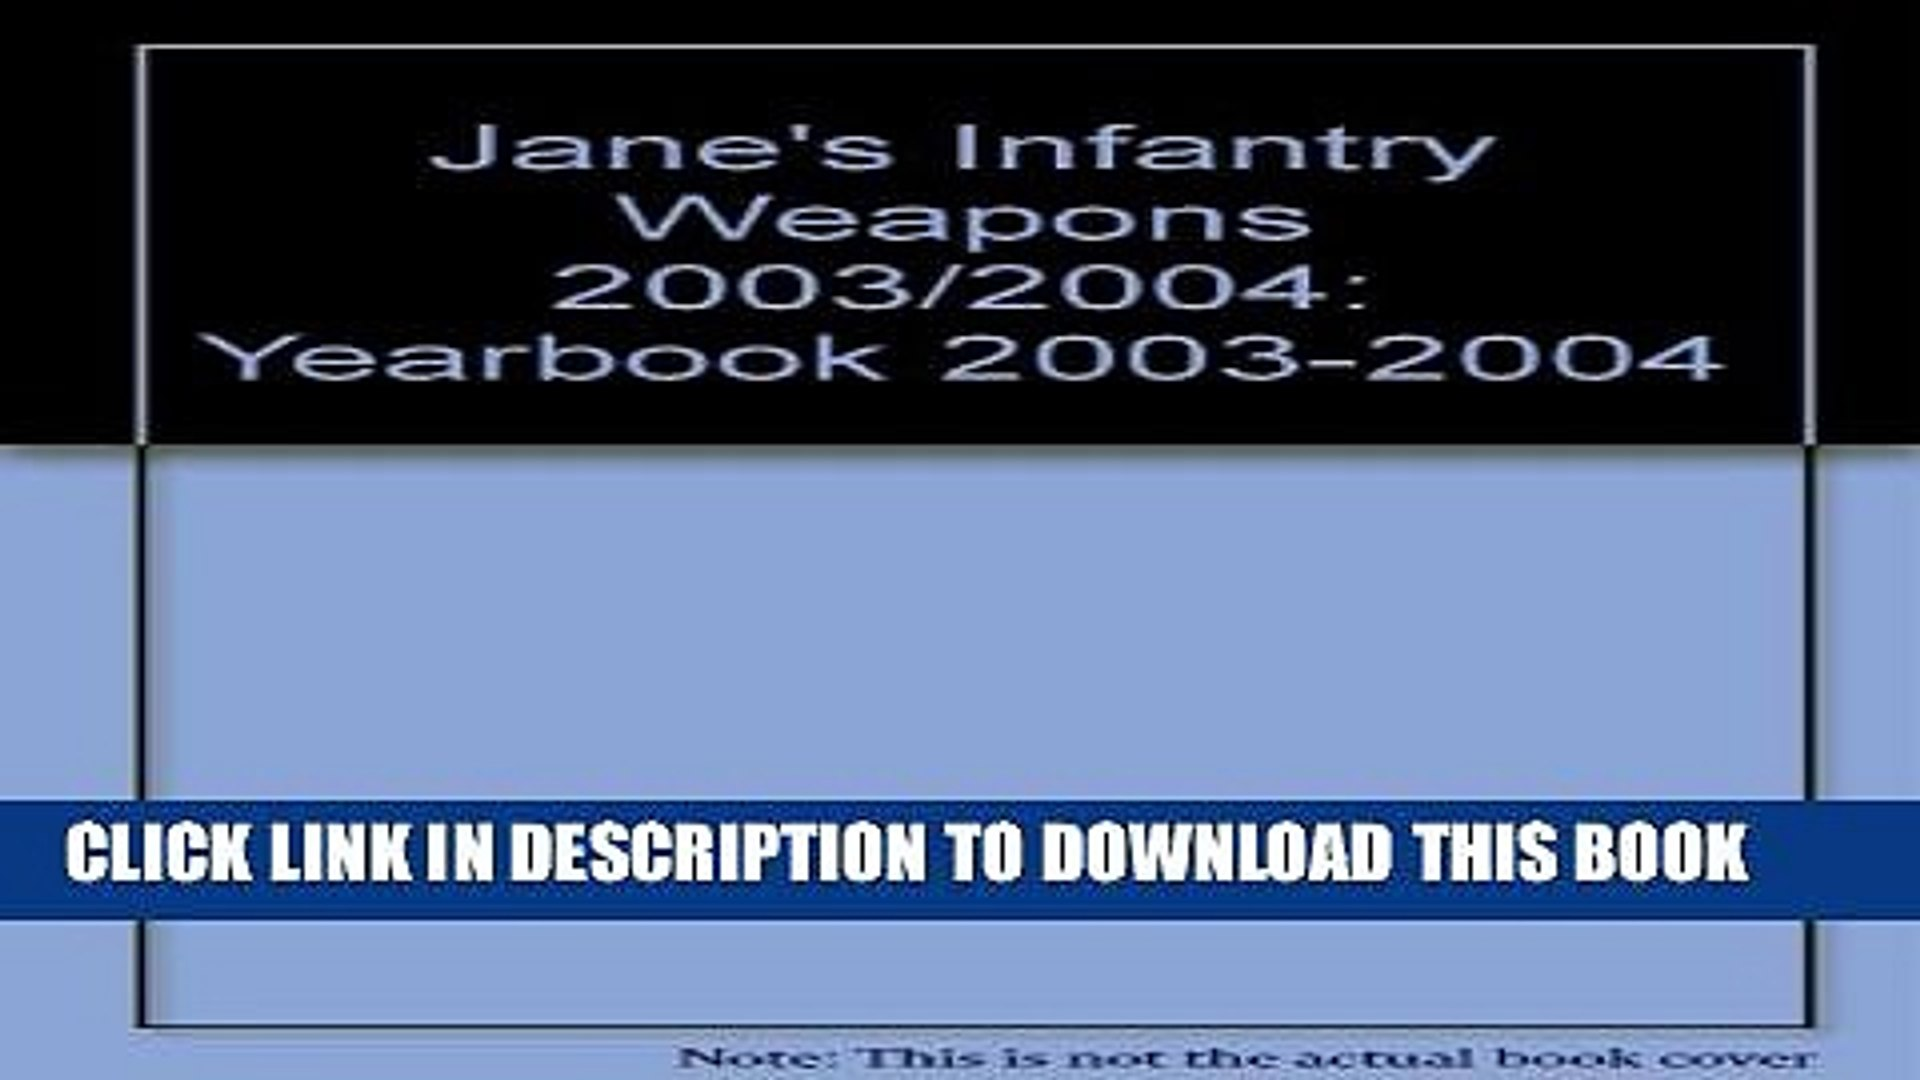 New Book Jane s Infantry Weapons, 2003-2004 (Jane s Infantry Weapons (Print Version), 2003 2004)